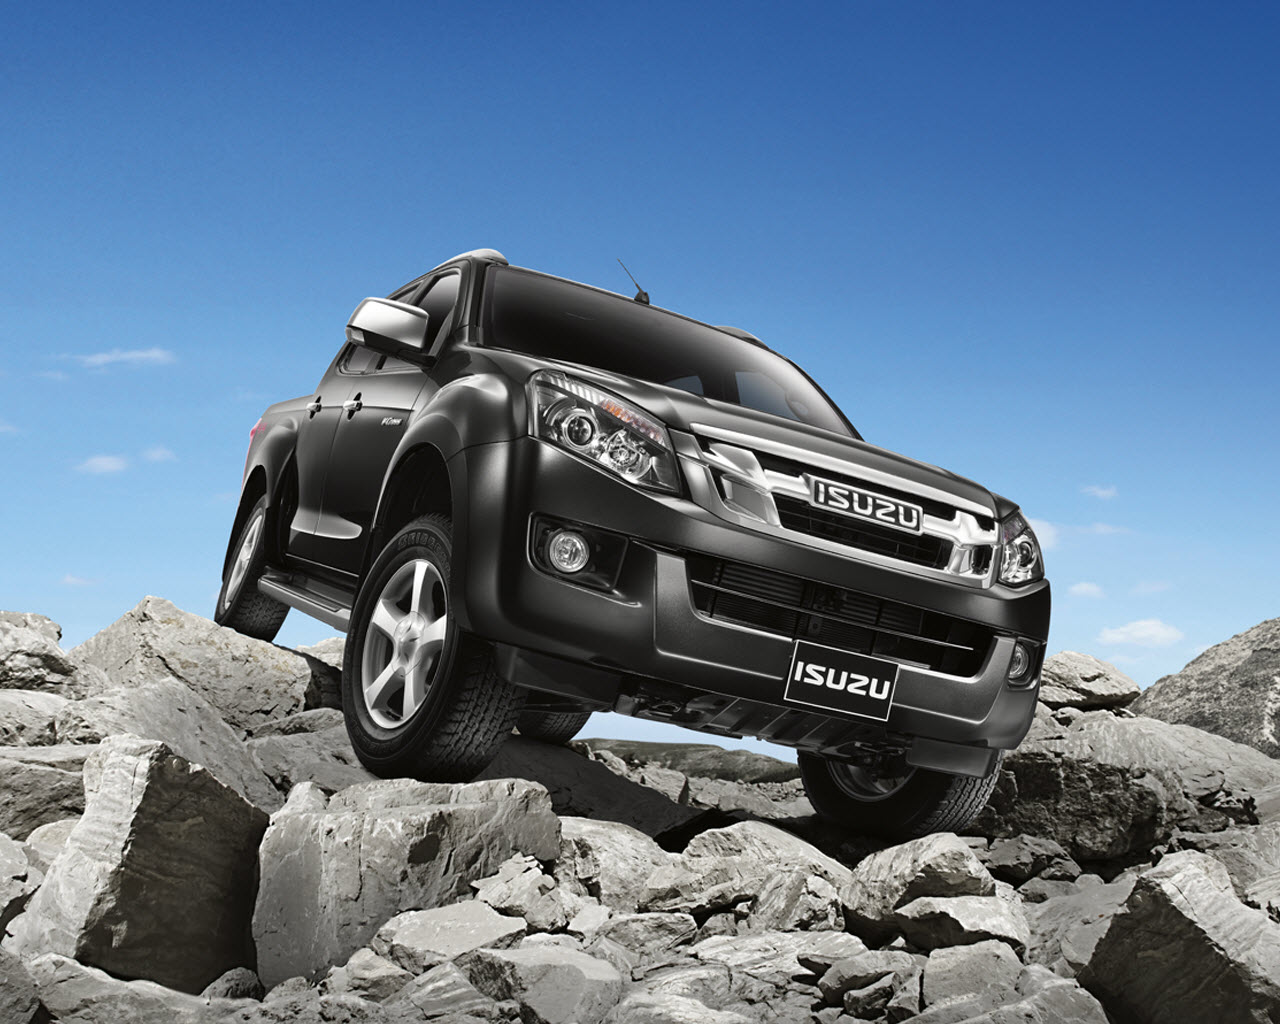 ������ ������ 2013 ������� ������� 2012_Isuzu-DMAX-TH_02.jpg